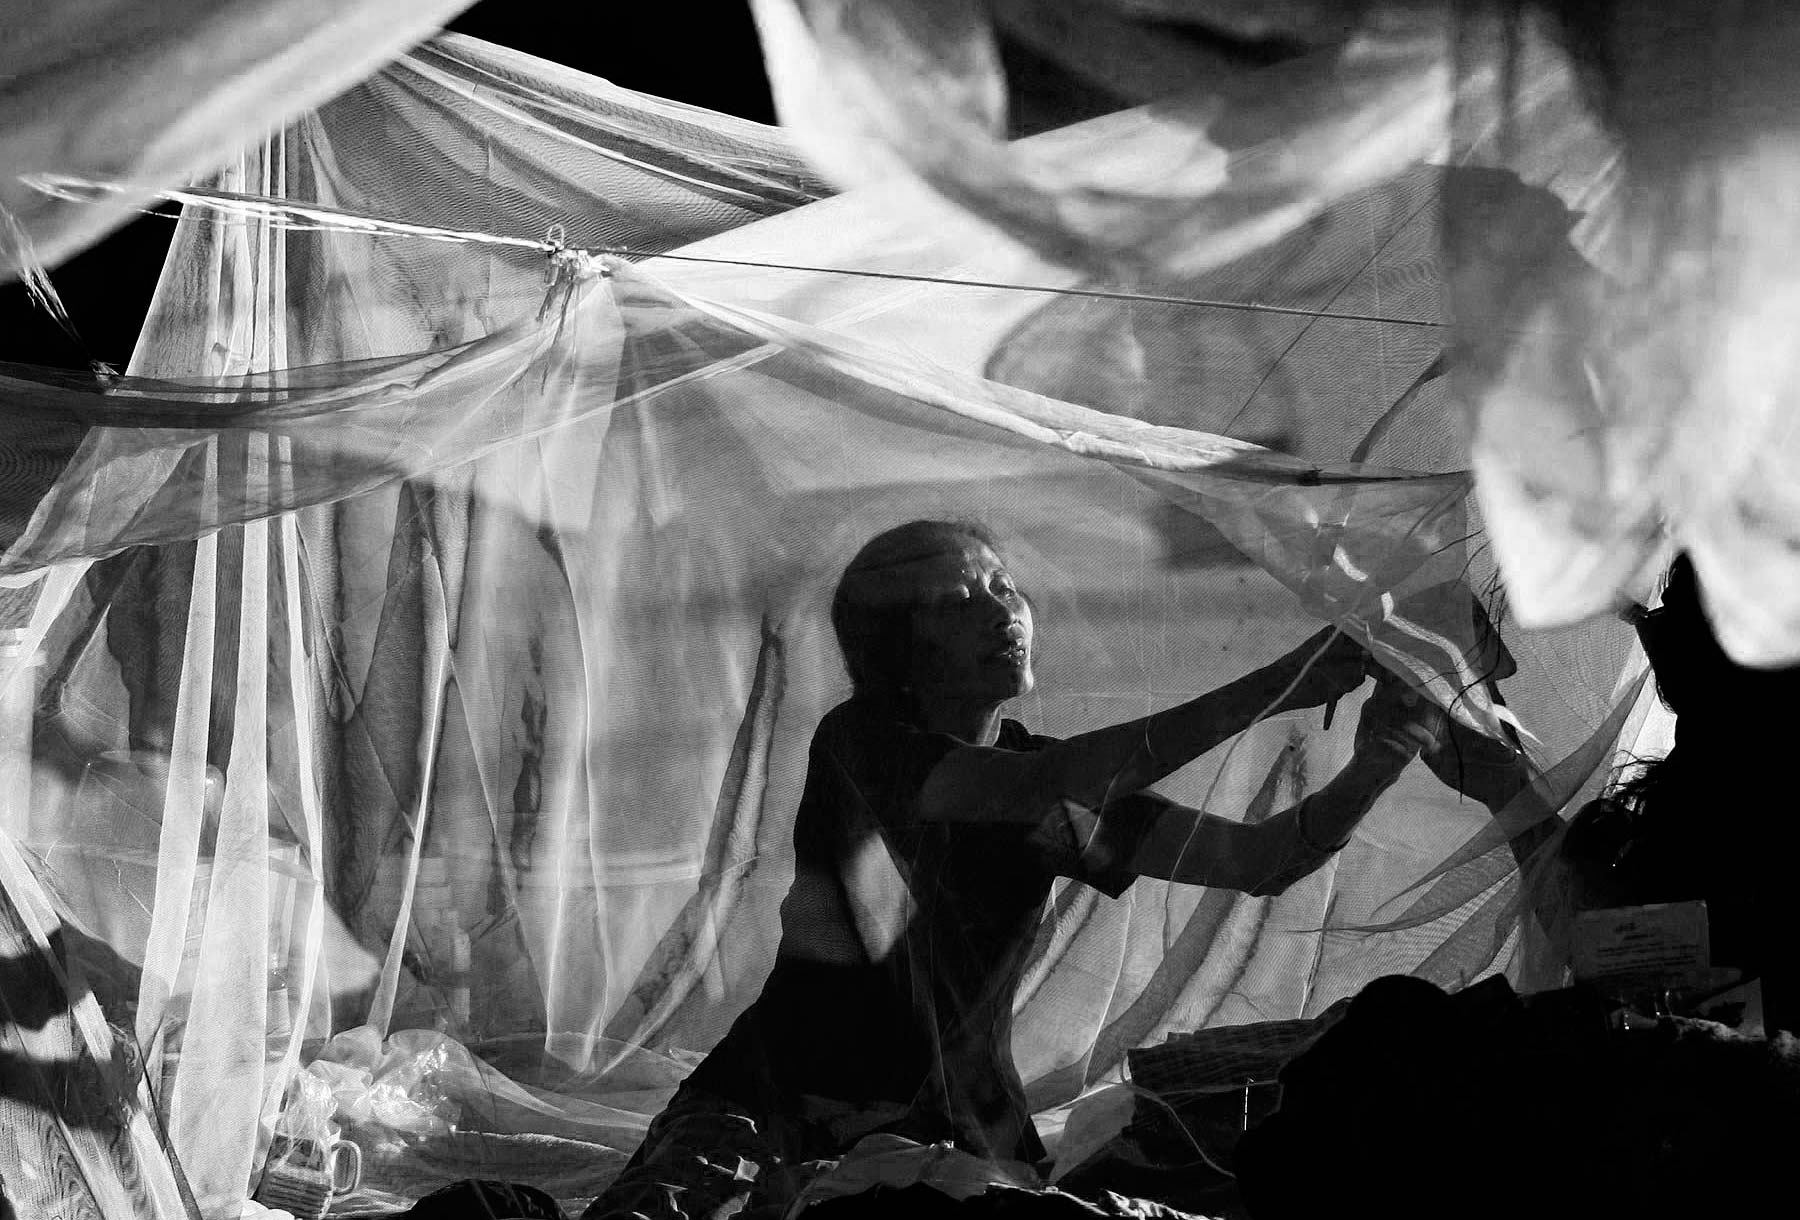 East Timor woman arranges mosquito netting at Refugee camp